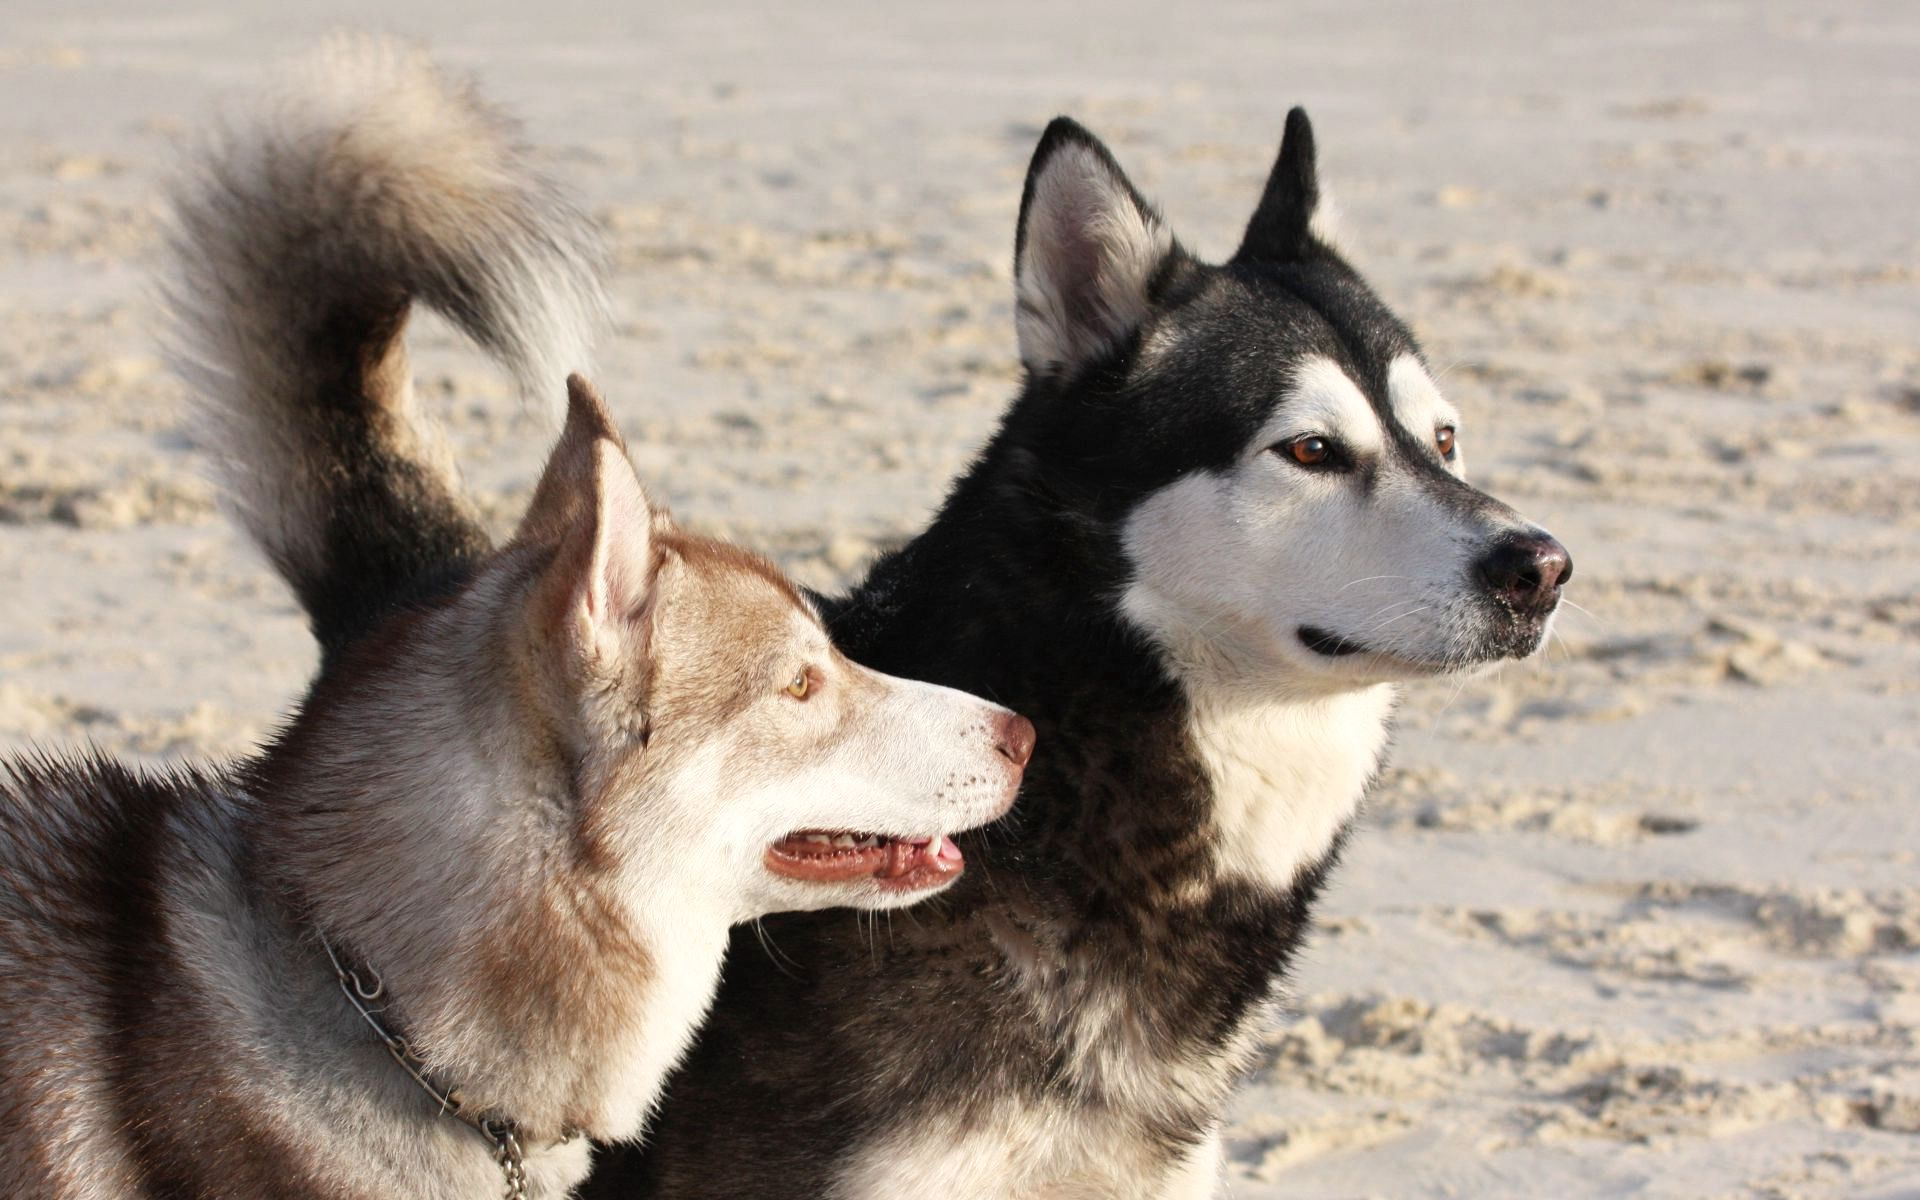 137946 download wallpaper Animals, Malamute, Dogs, Playful, Muzzle screensavers and pictures for free